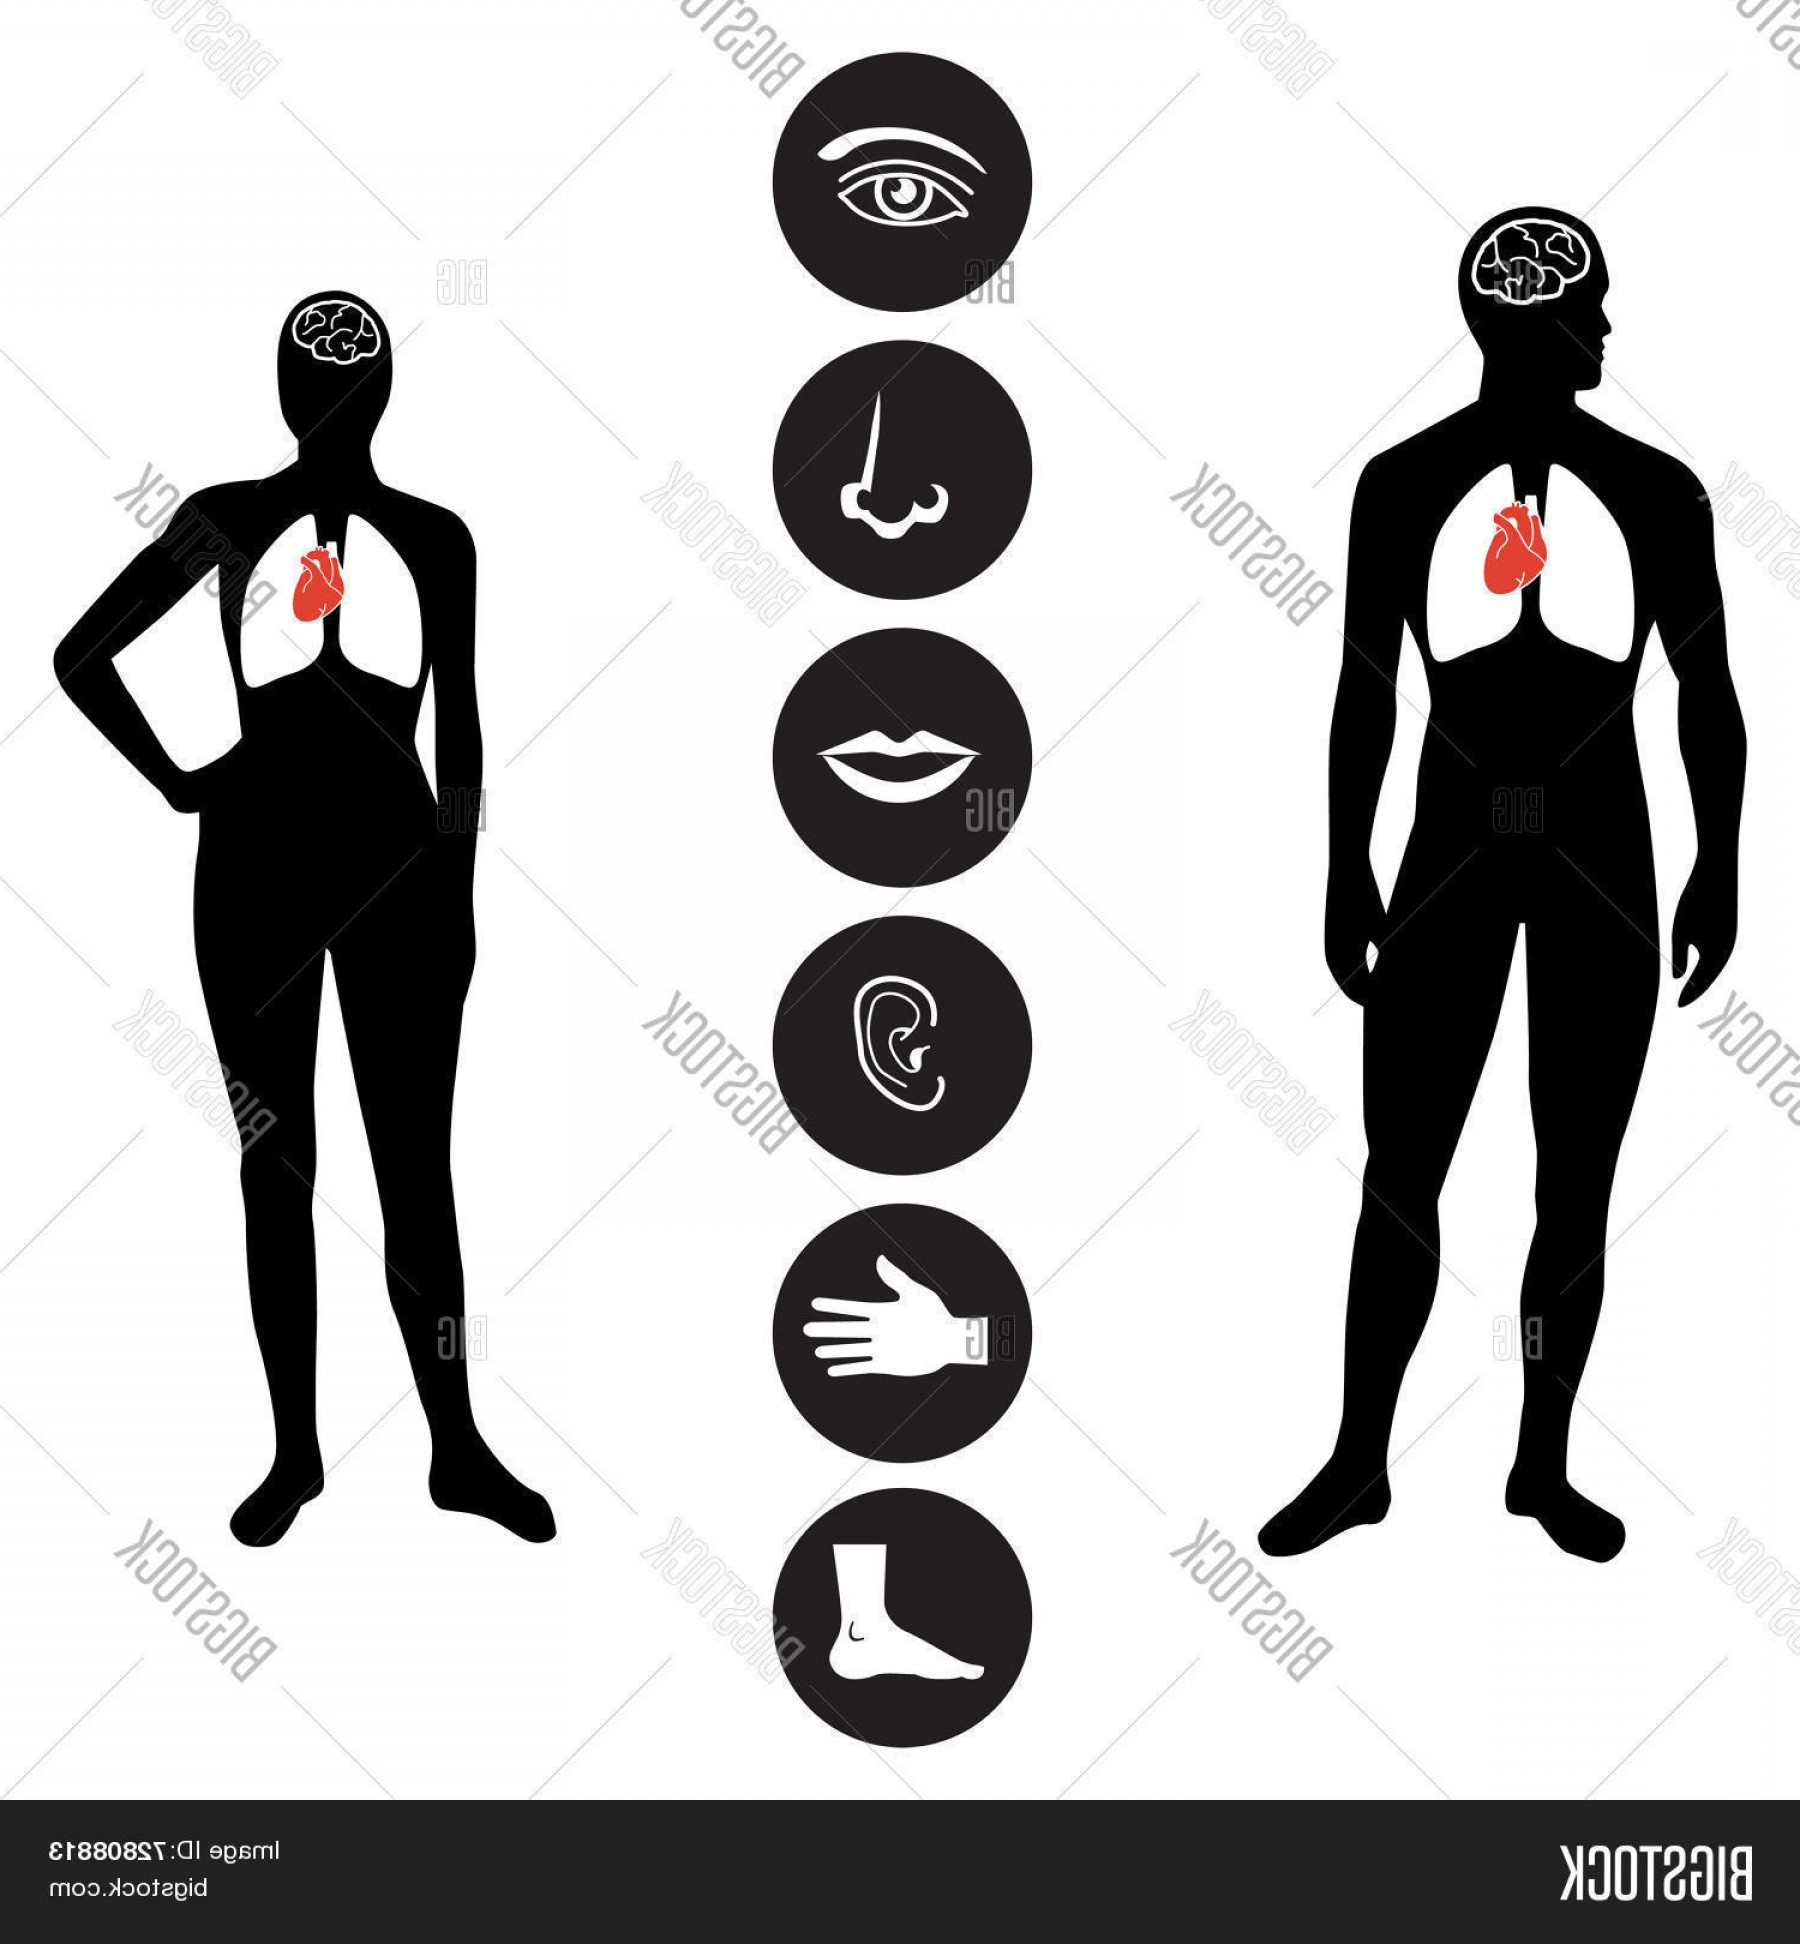 Female Parts Vector: Stock Vector Medical Human Body Part Icon Illustration